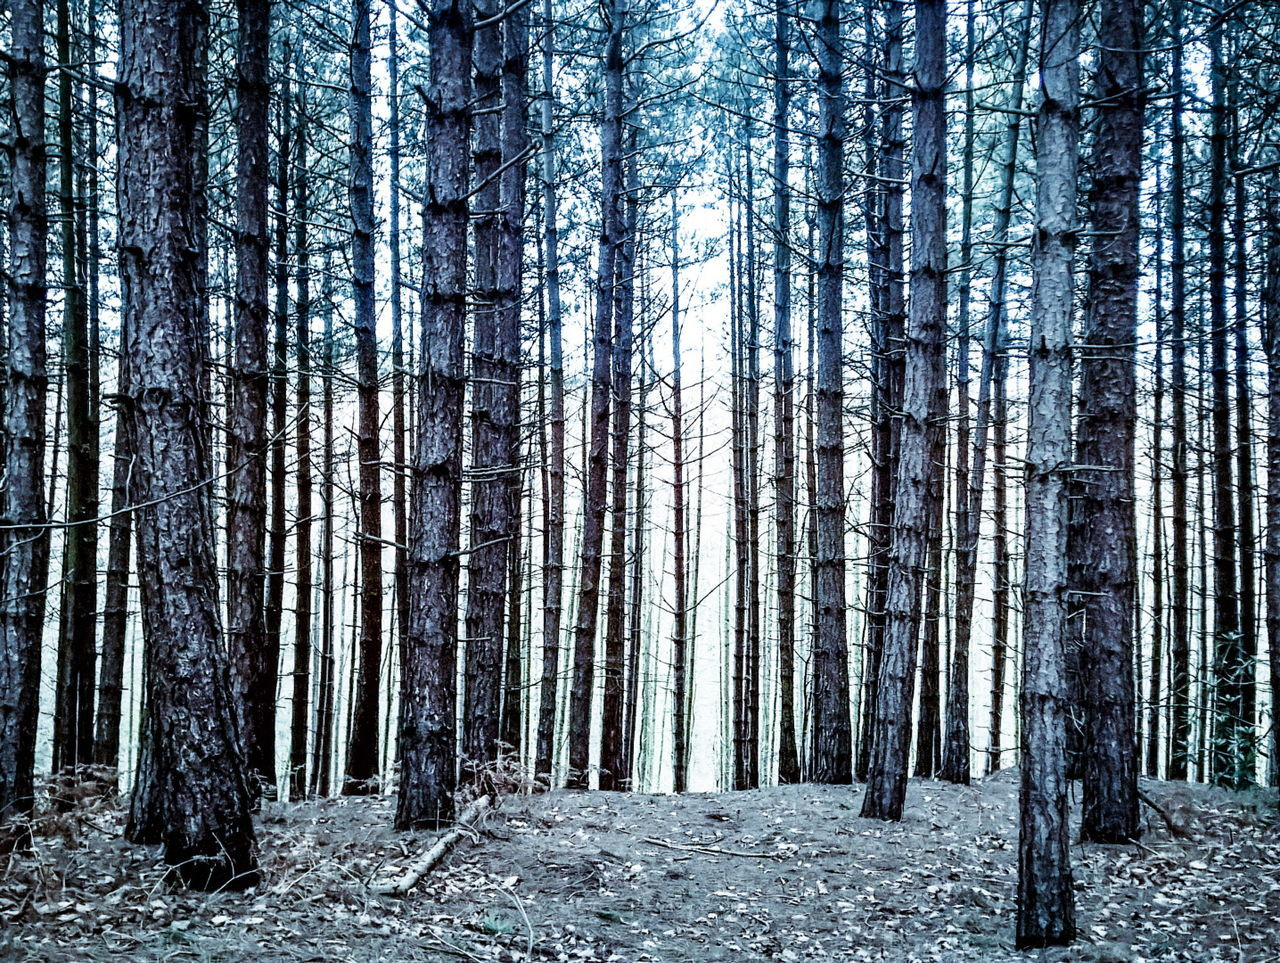 forest, tree trunk, tree, nature, tranquility, tranquil scene, woodland, beauty in nature, day, no people, scenics, landscape, outdoors, growth